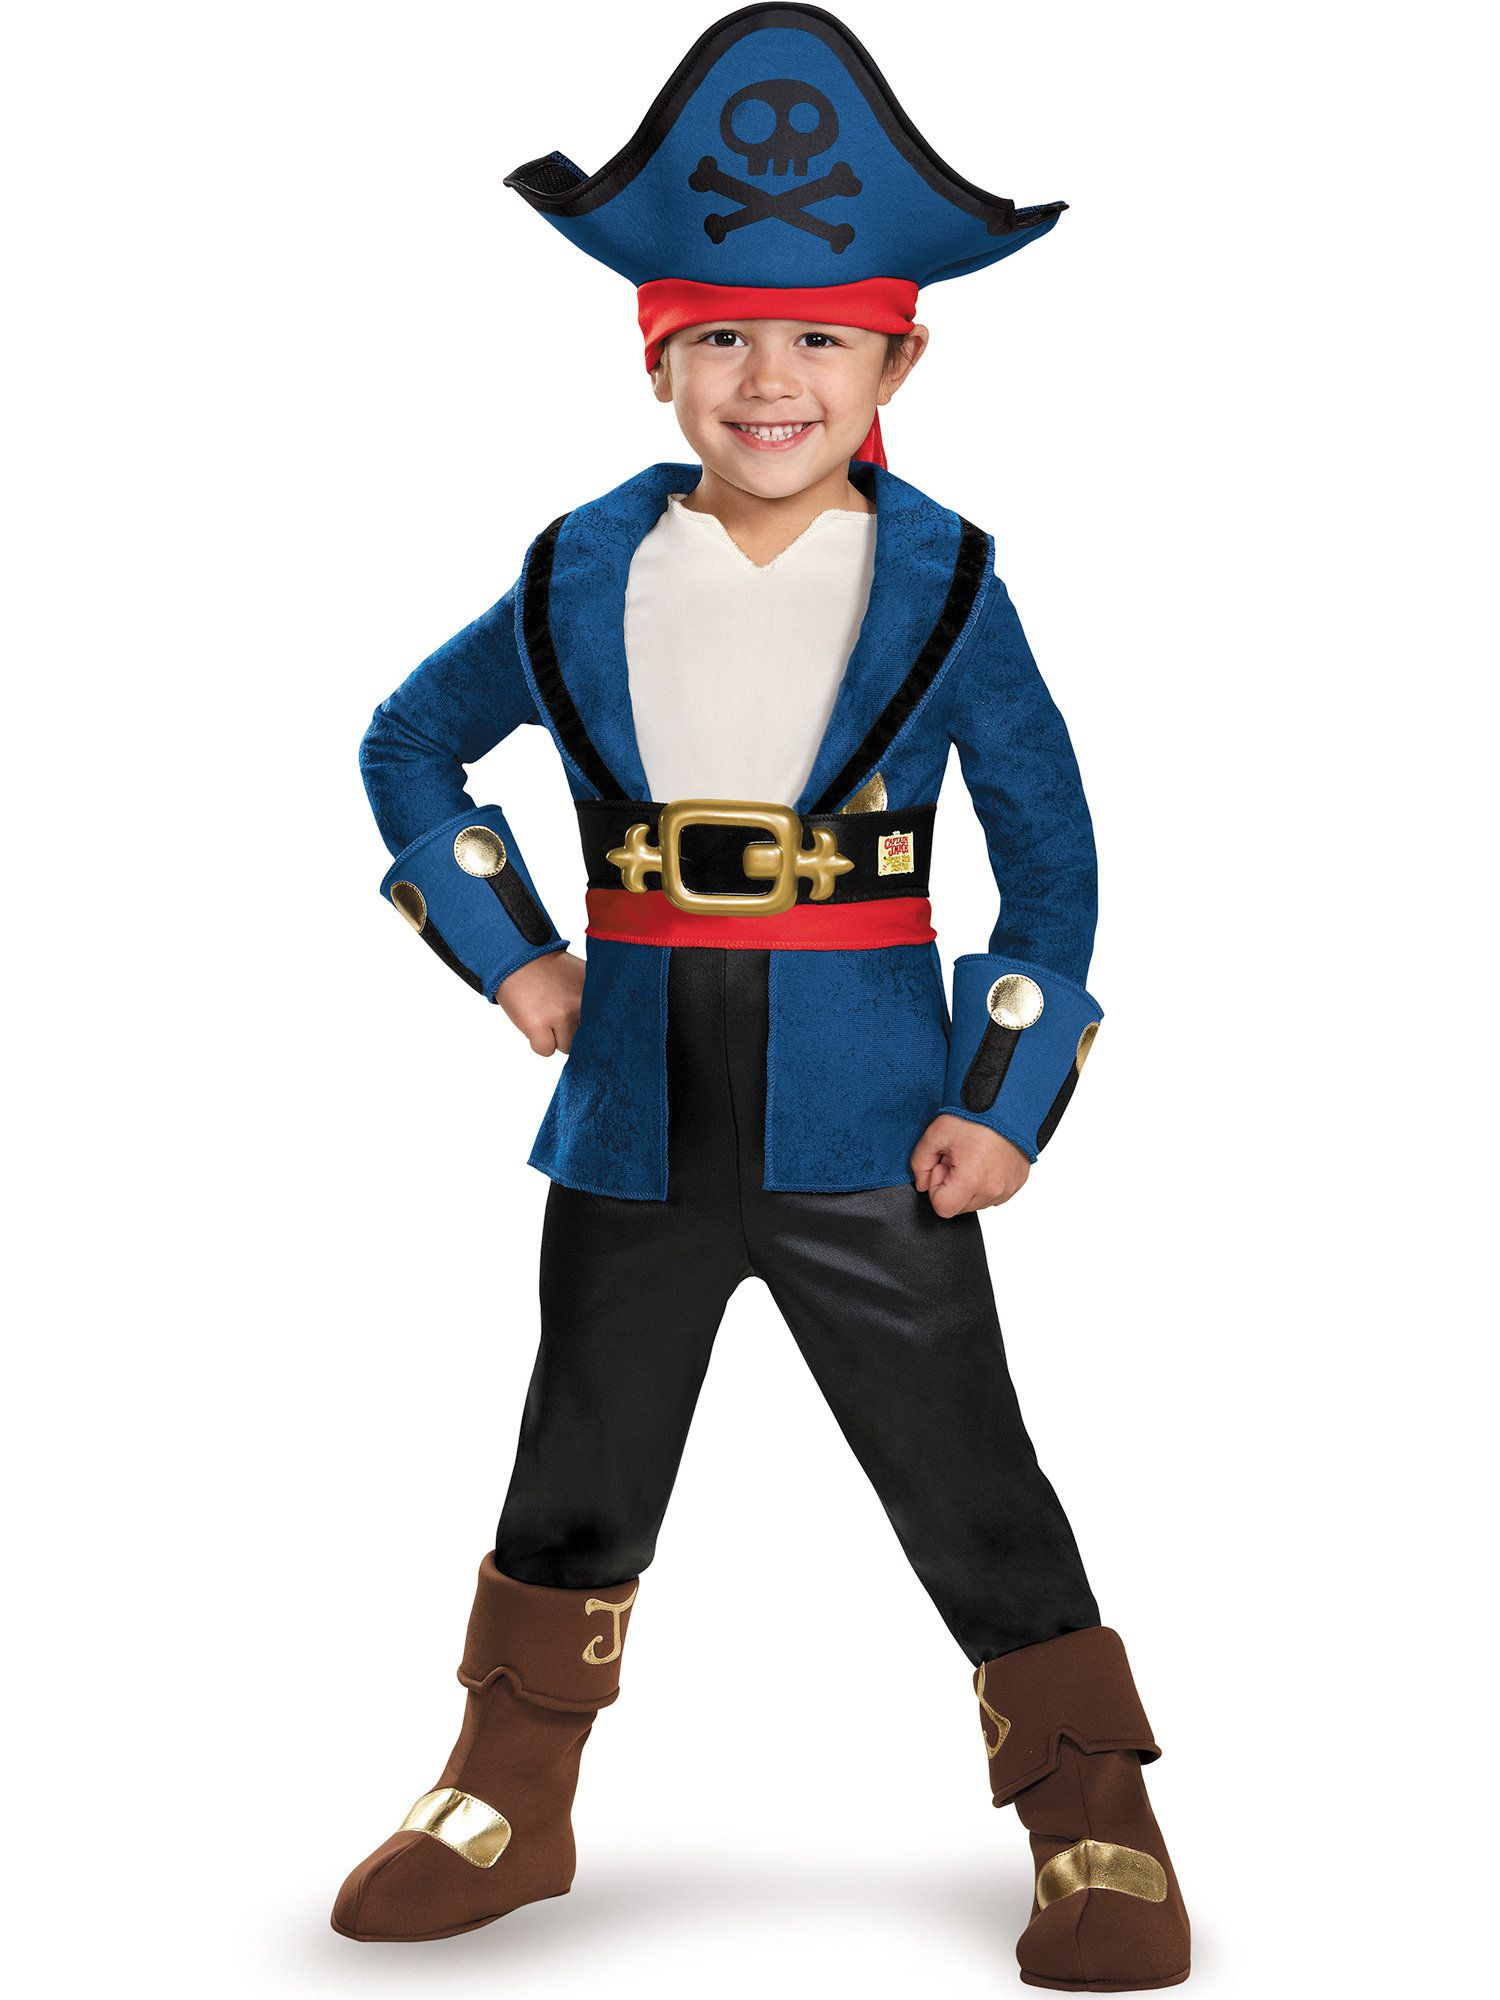 Deluxe Toddler Captain Jake Costume - Captain Jake and the Neverland Pirates  sc 1 st  Wholesale Halloween Costumes & Izzy Deluxe Costume - Jake u0026 the Neverland Pirates Girls Costumes